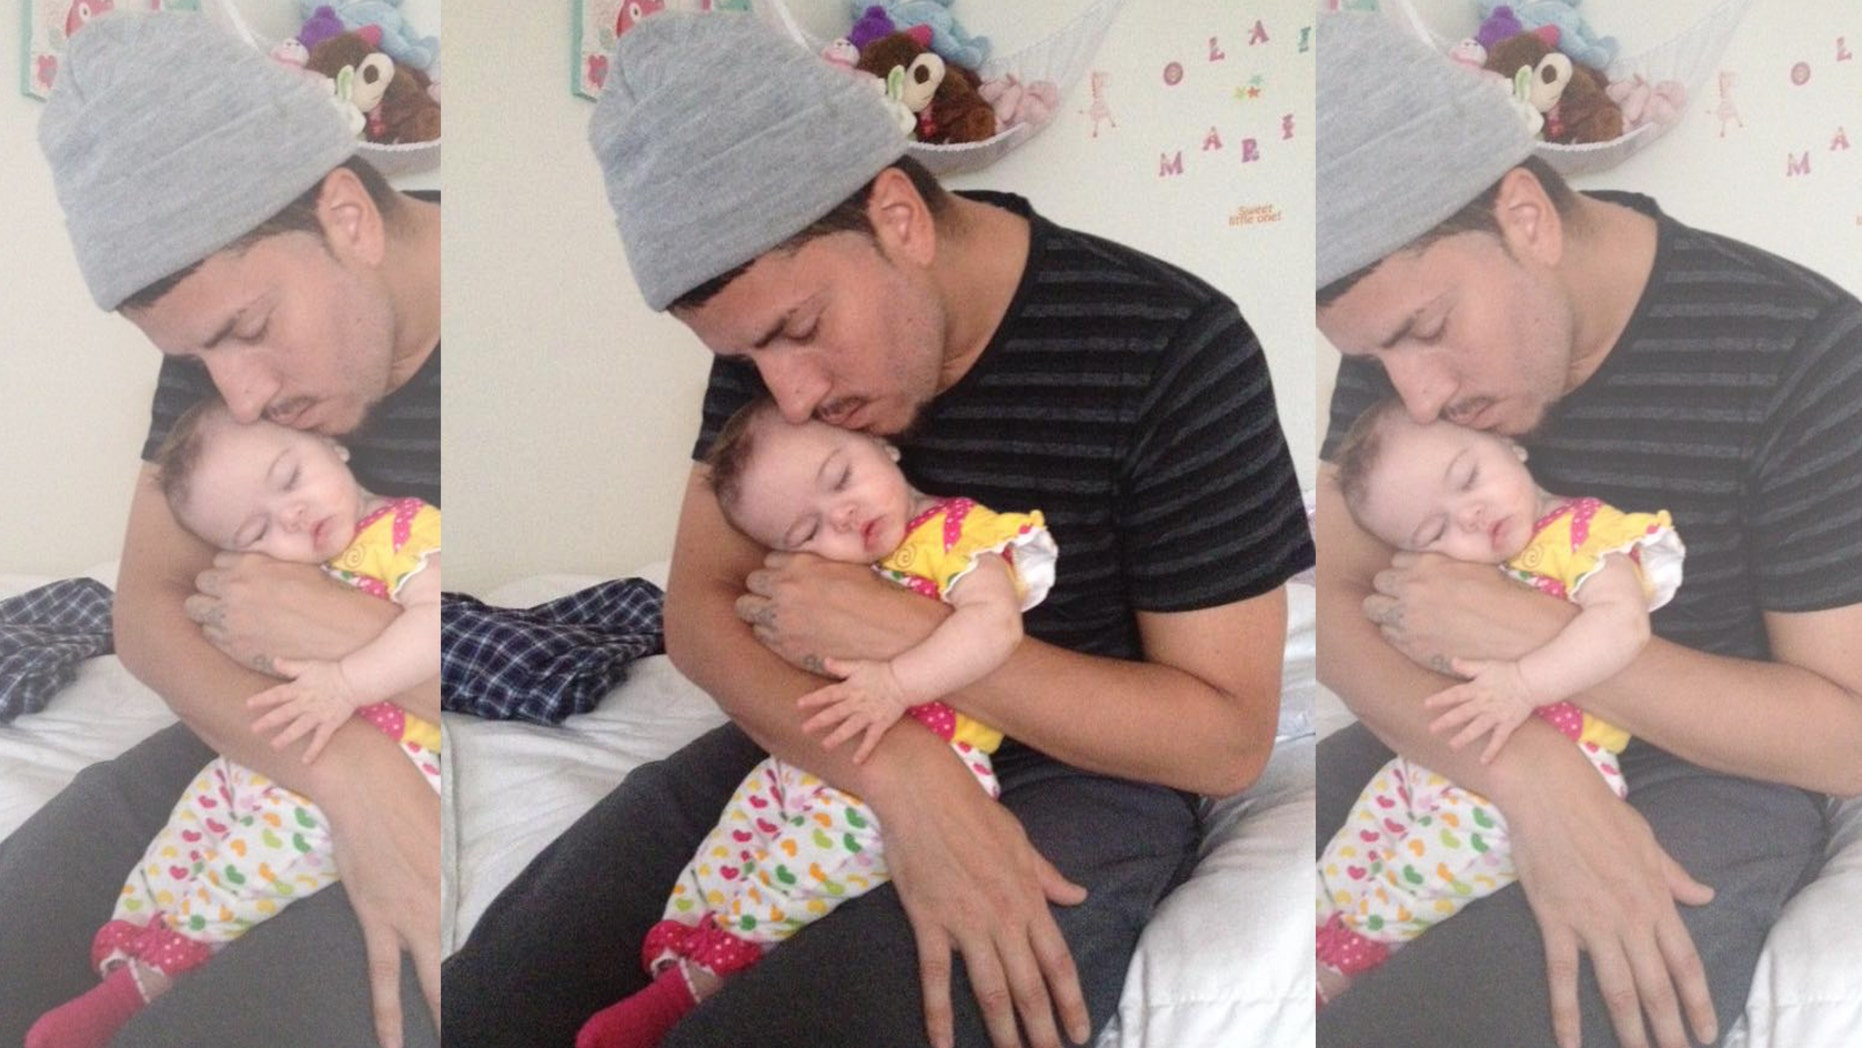 Marco Mejia and daughter shown in photo from his Facebook profile.